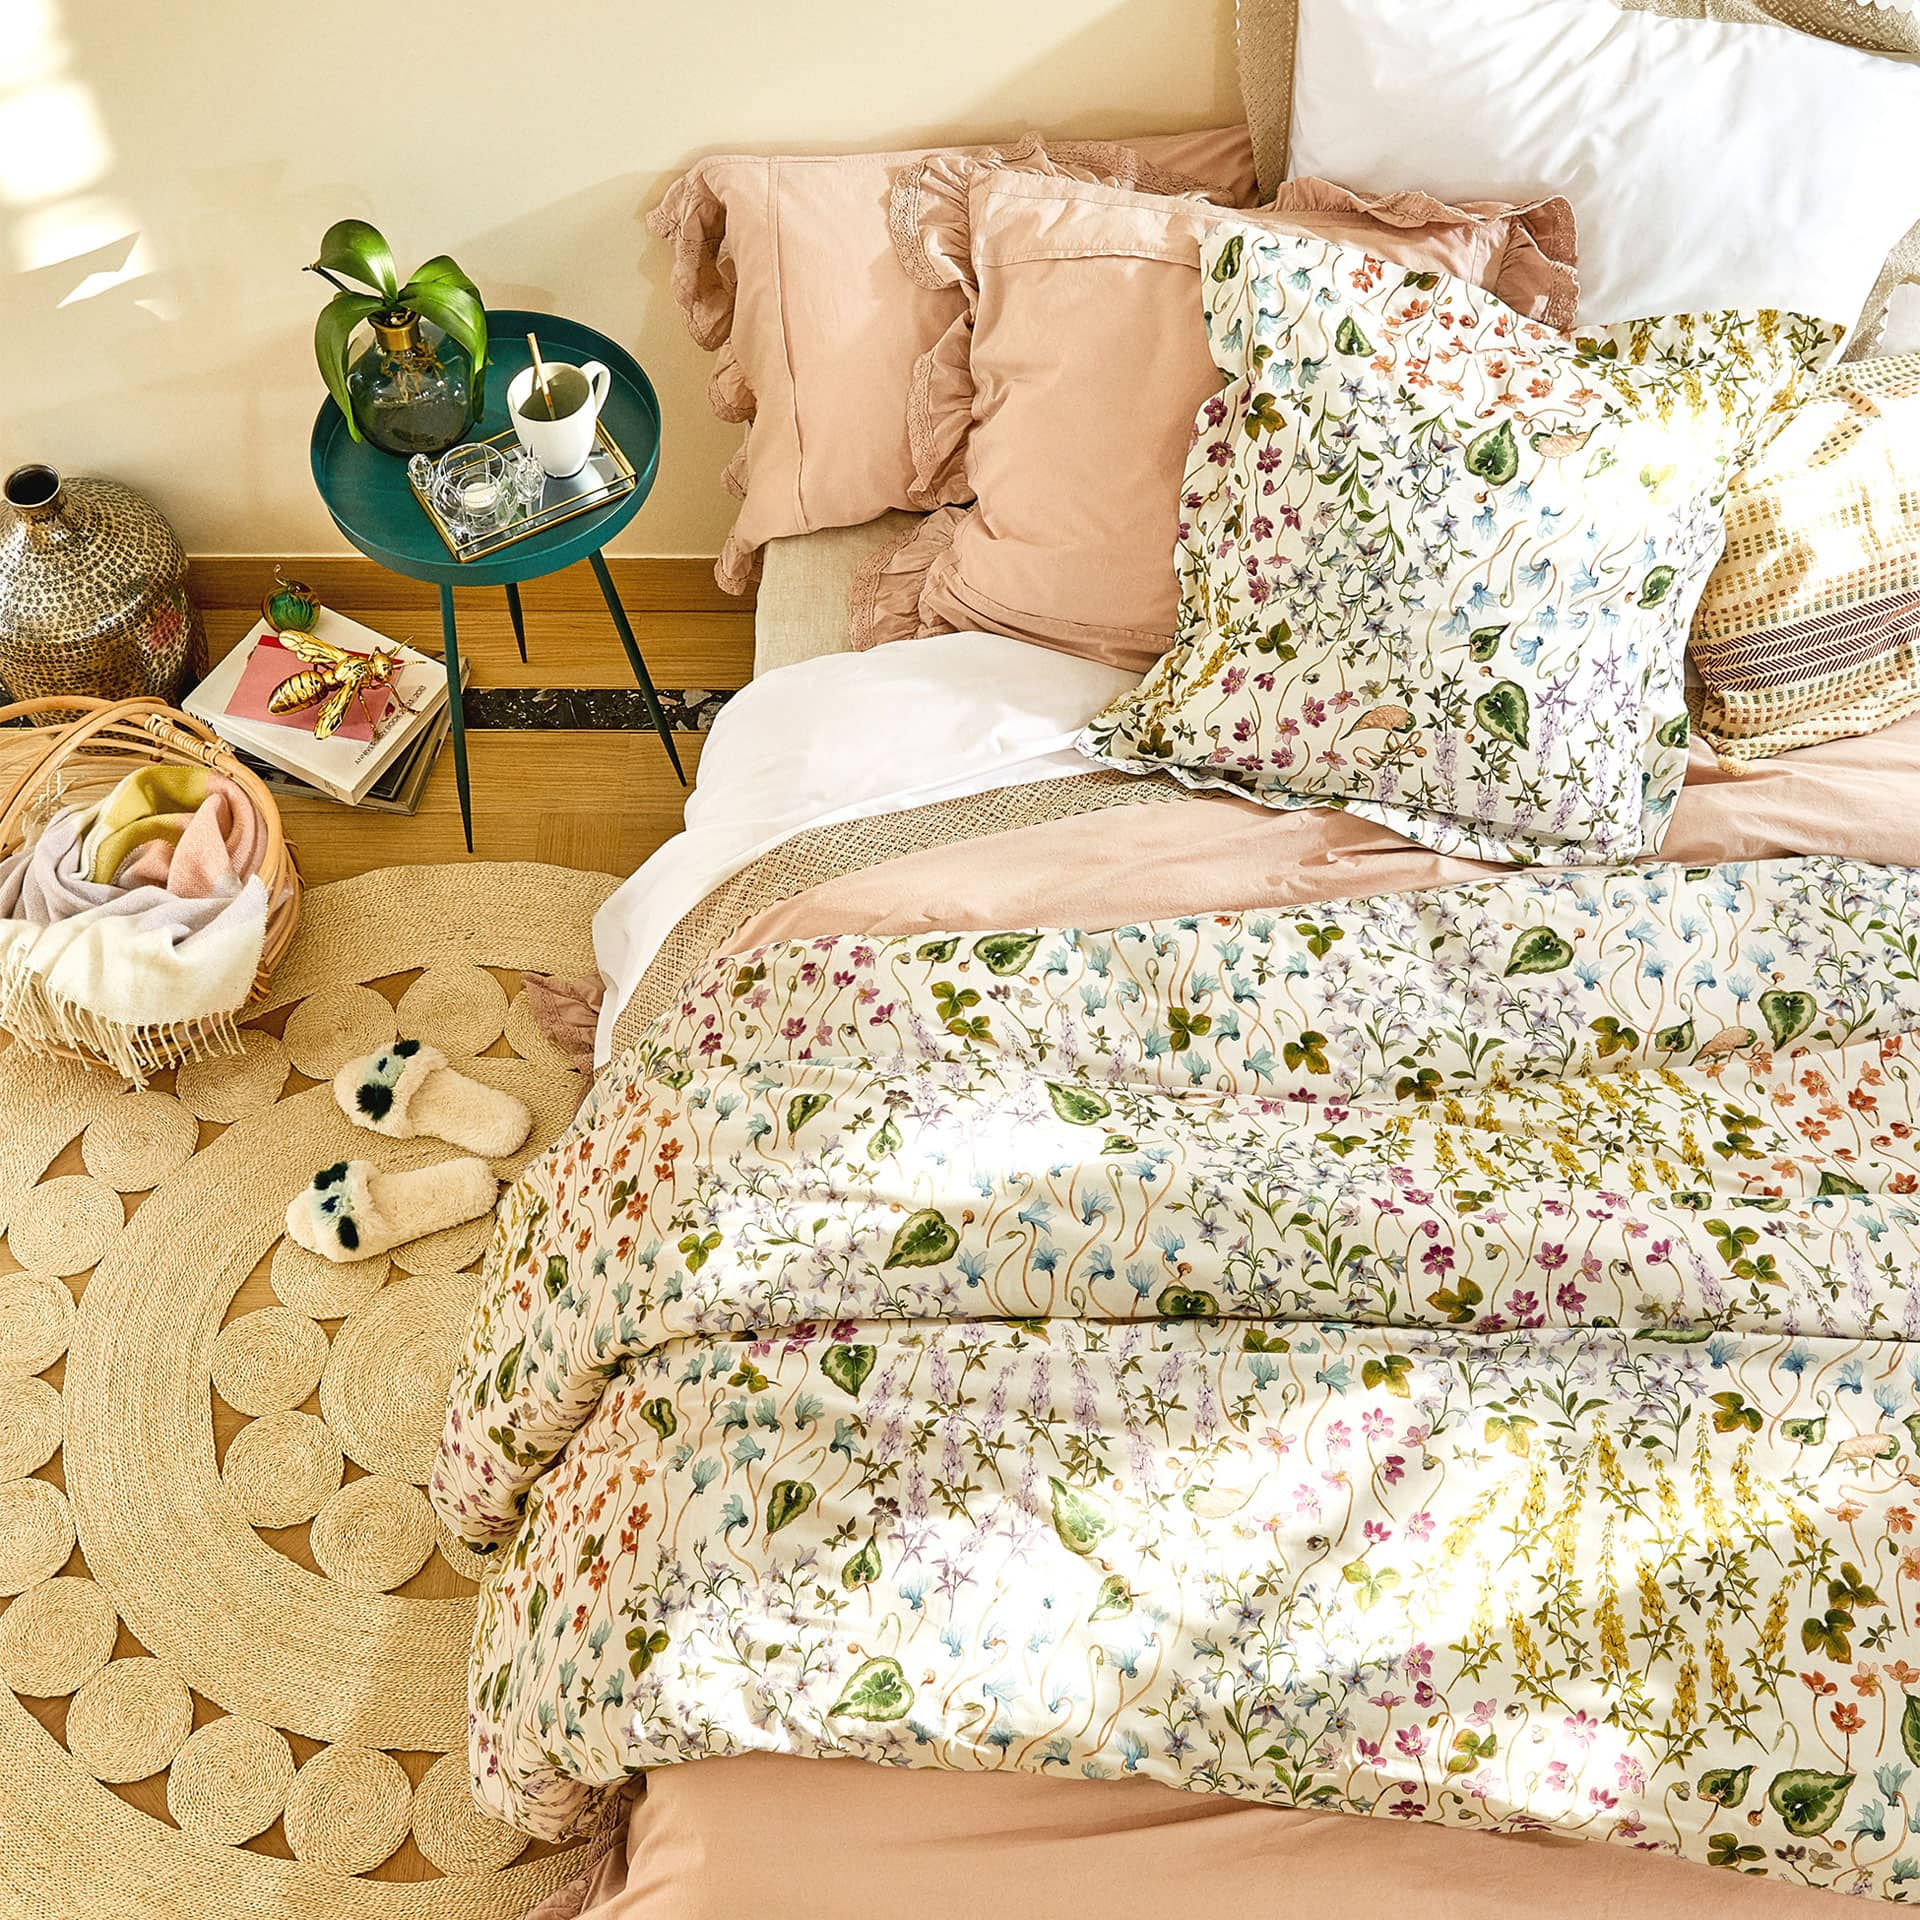 floral and leaf print duvet cover  duvet covers  bedroom  zara  -  image  of the product floral and leaf print duvet cover